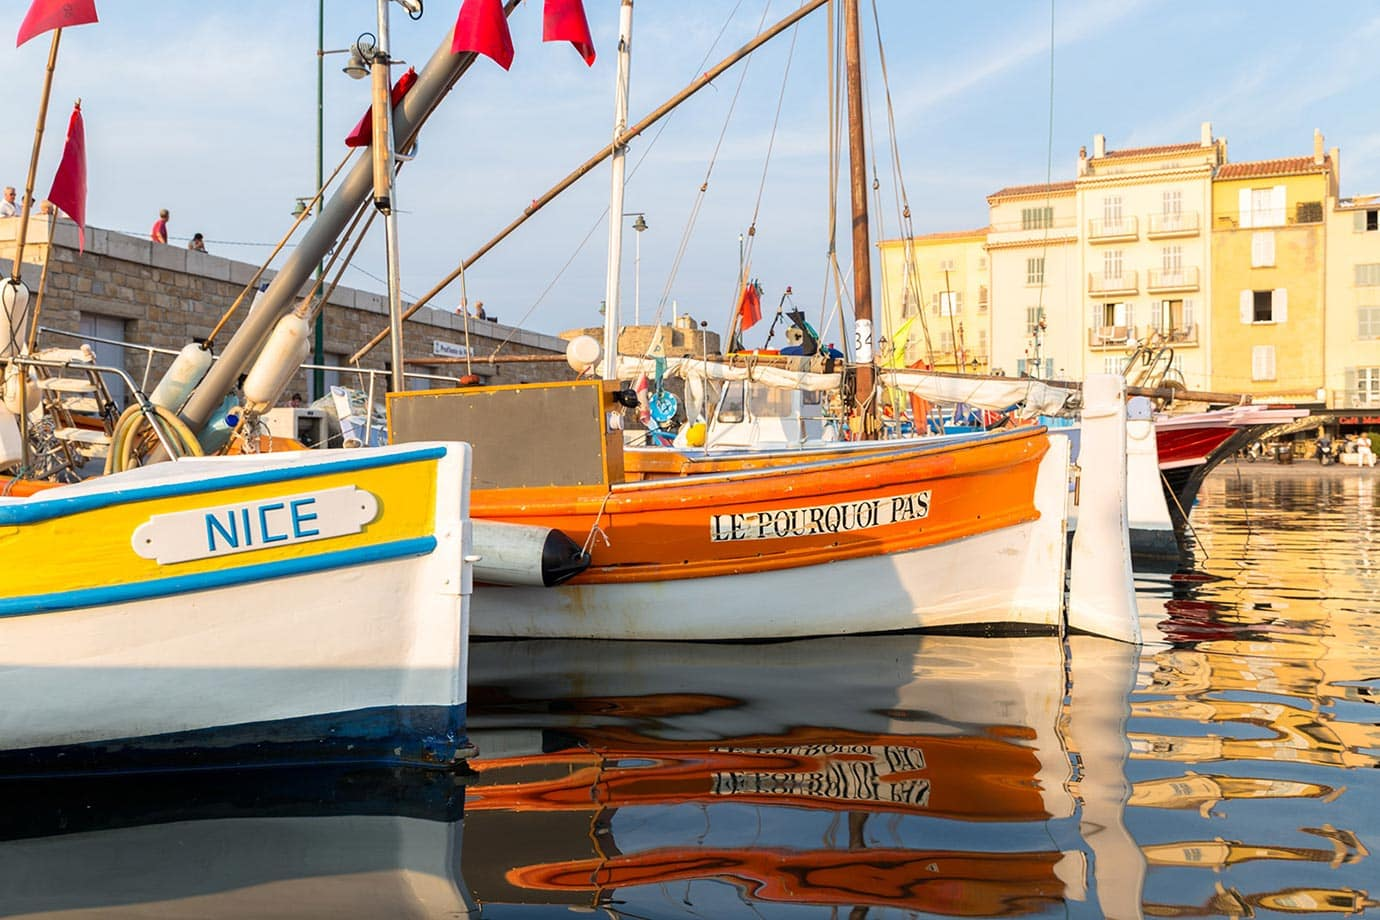 Boats at St-Tropez